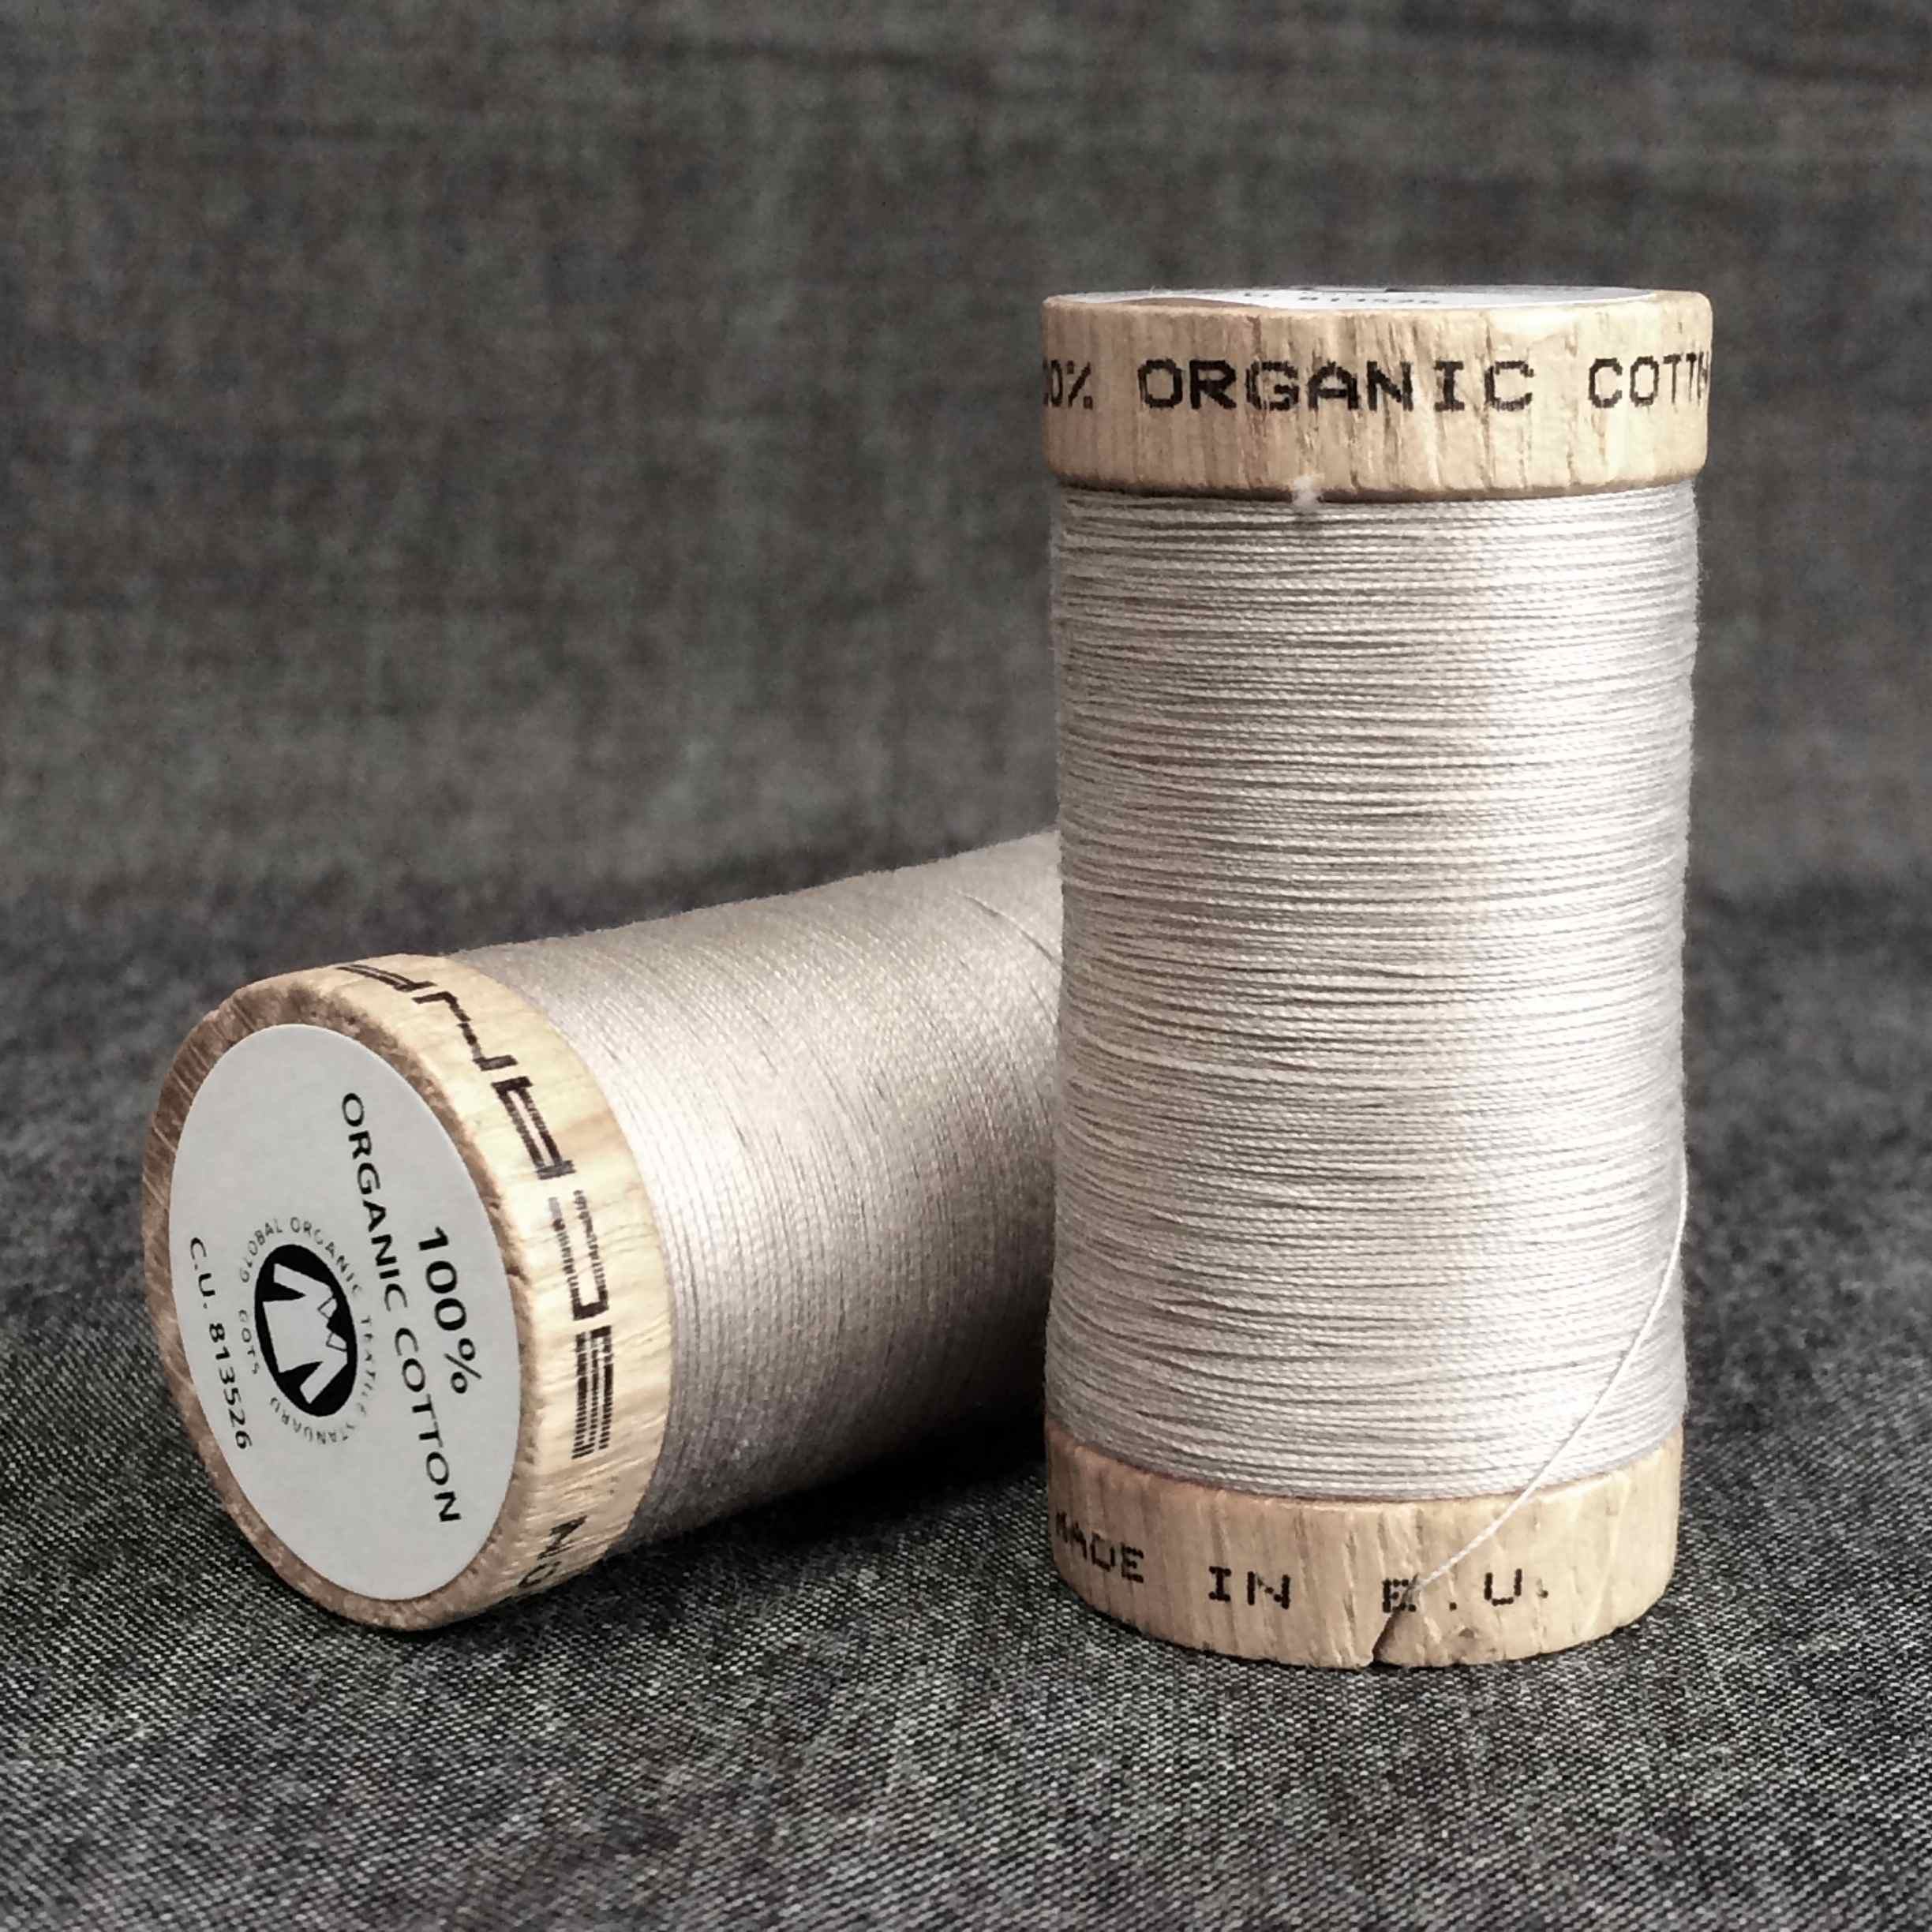 Scanfil Organic Cotton Sewing Thread Light Grey